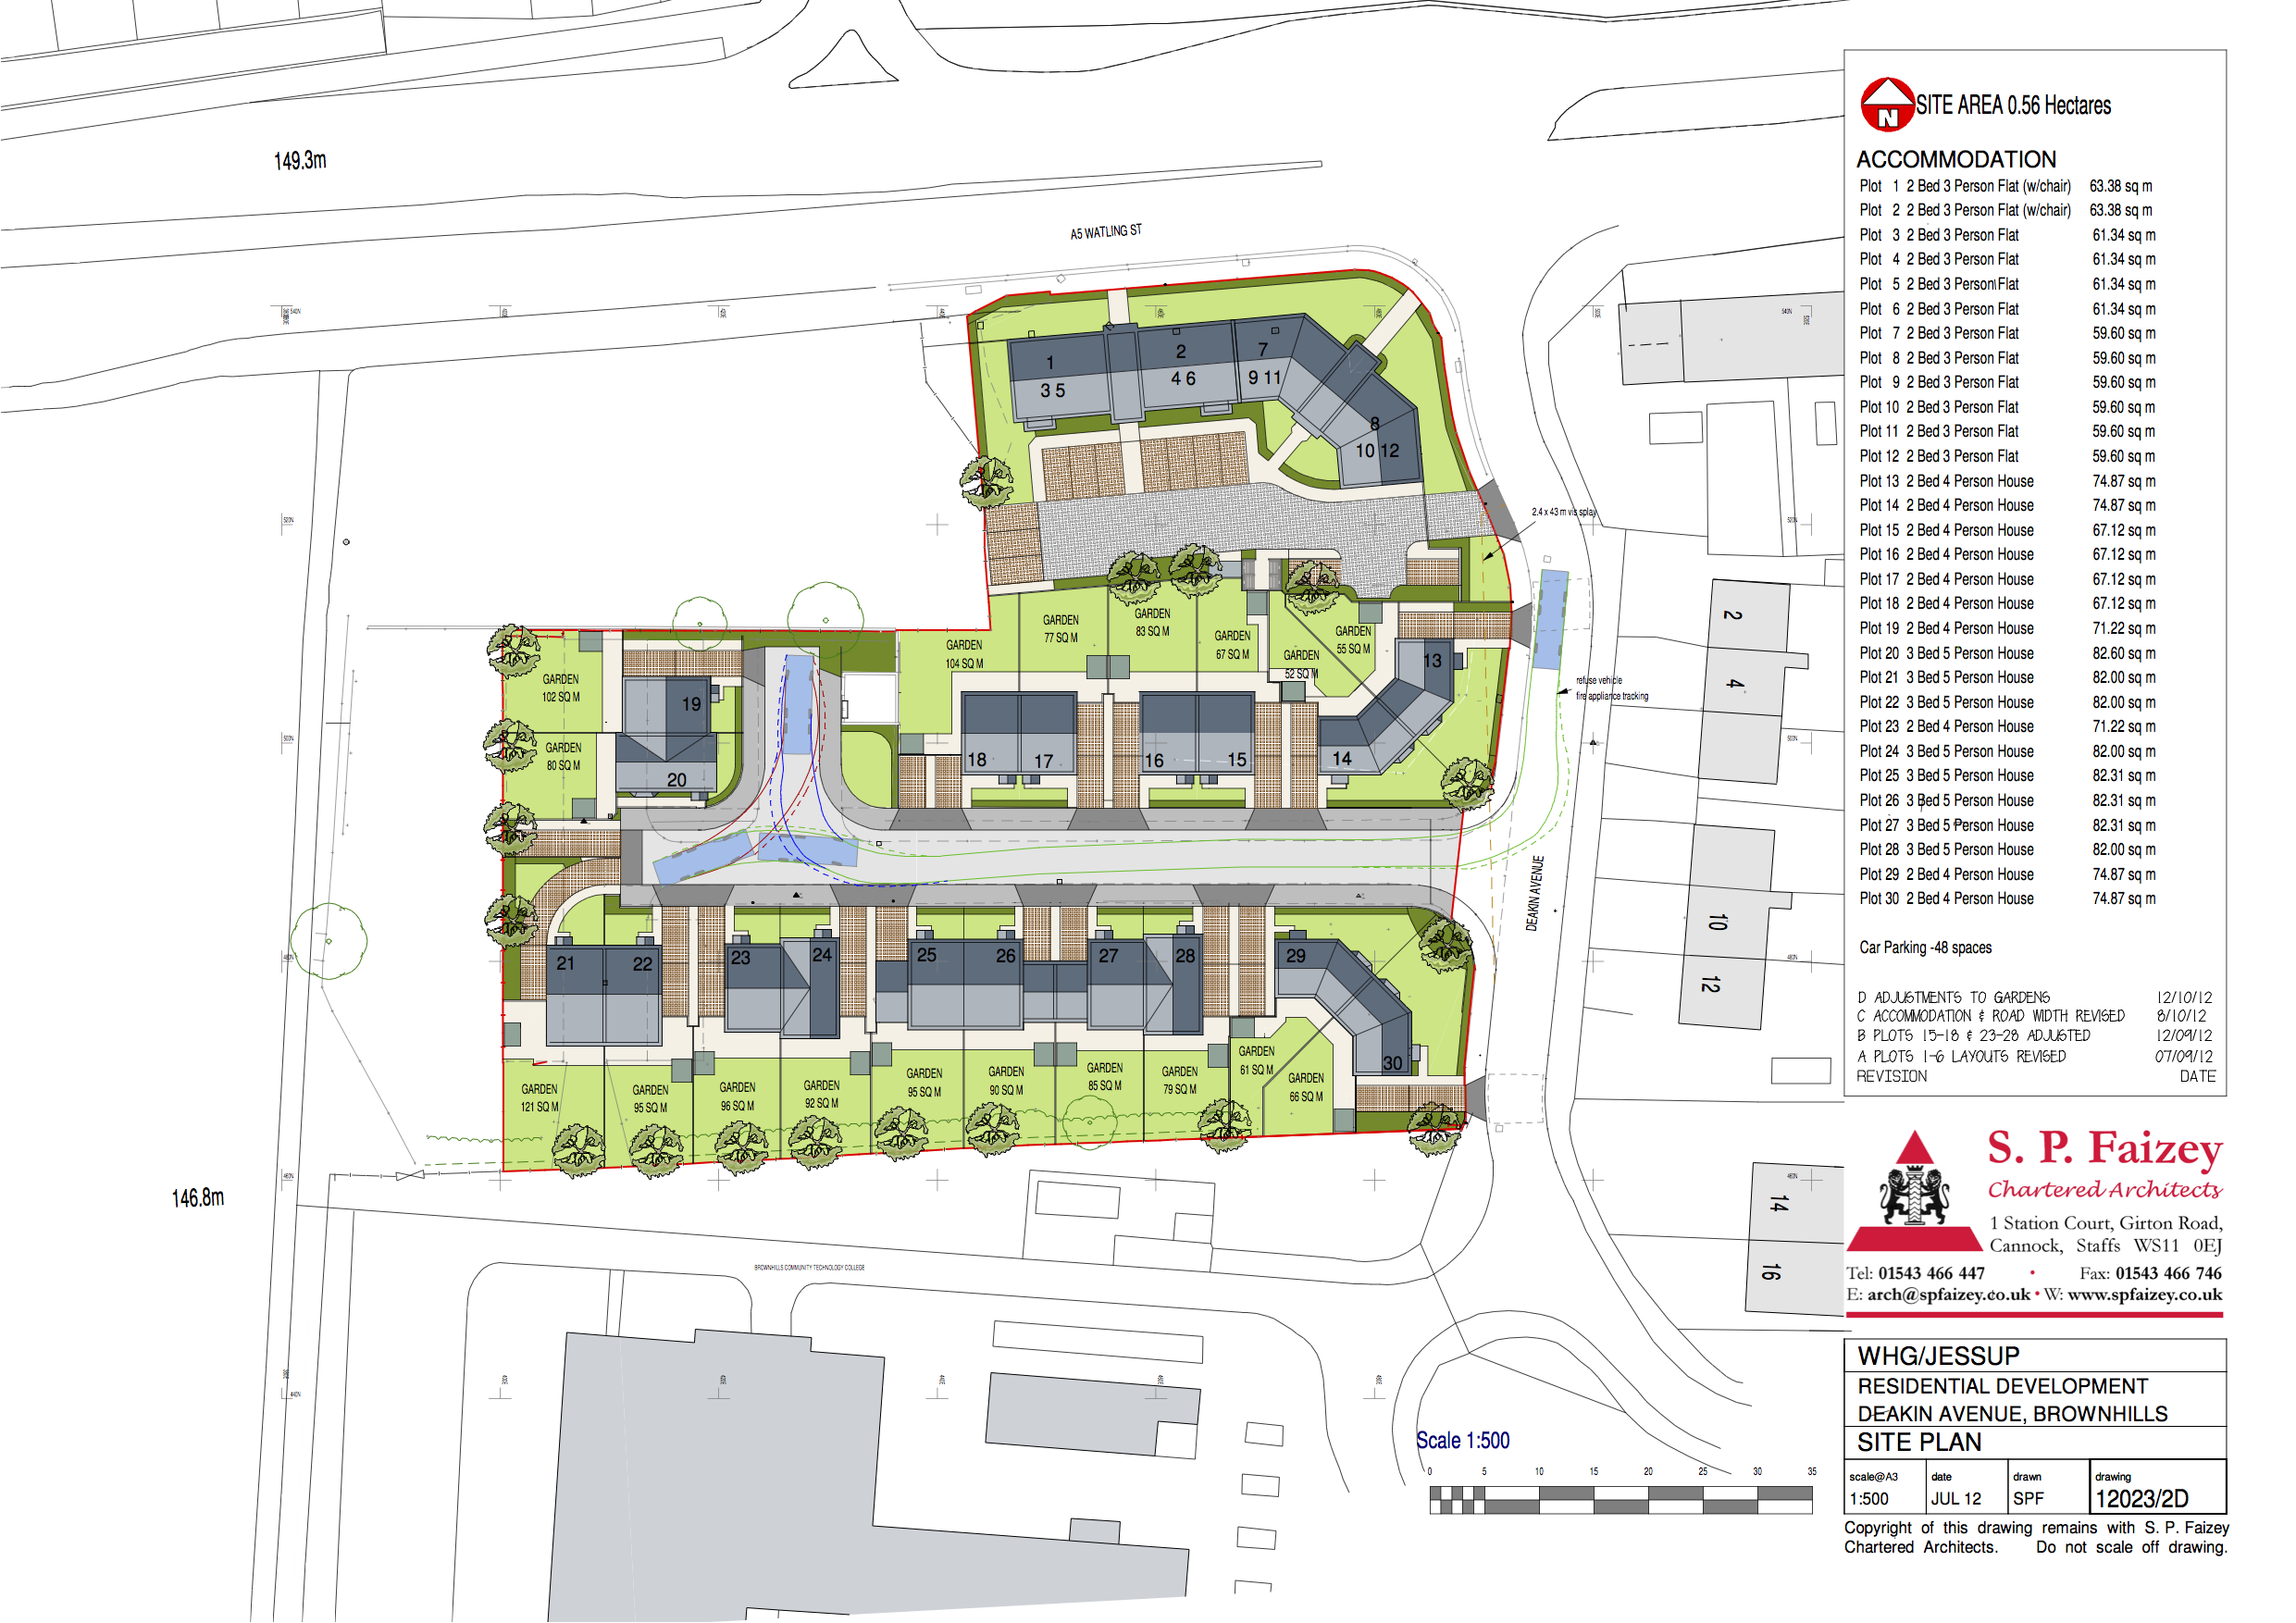 New homes planned for brownhills brownhillsbob 39 s for Home site plan